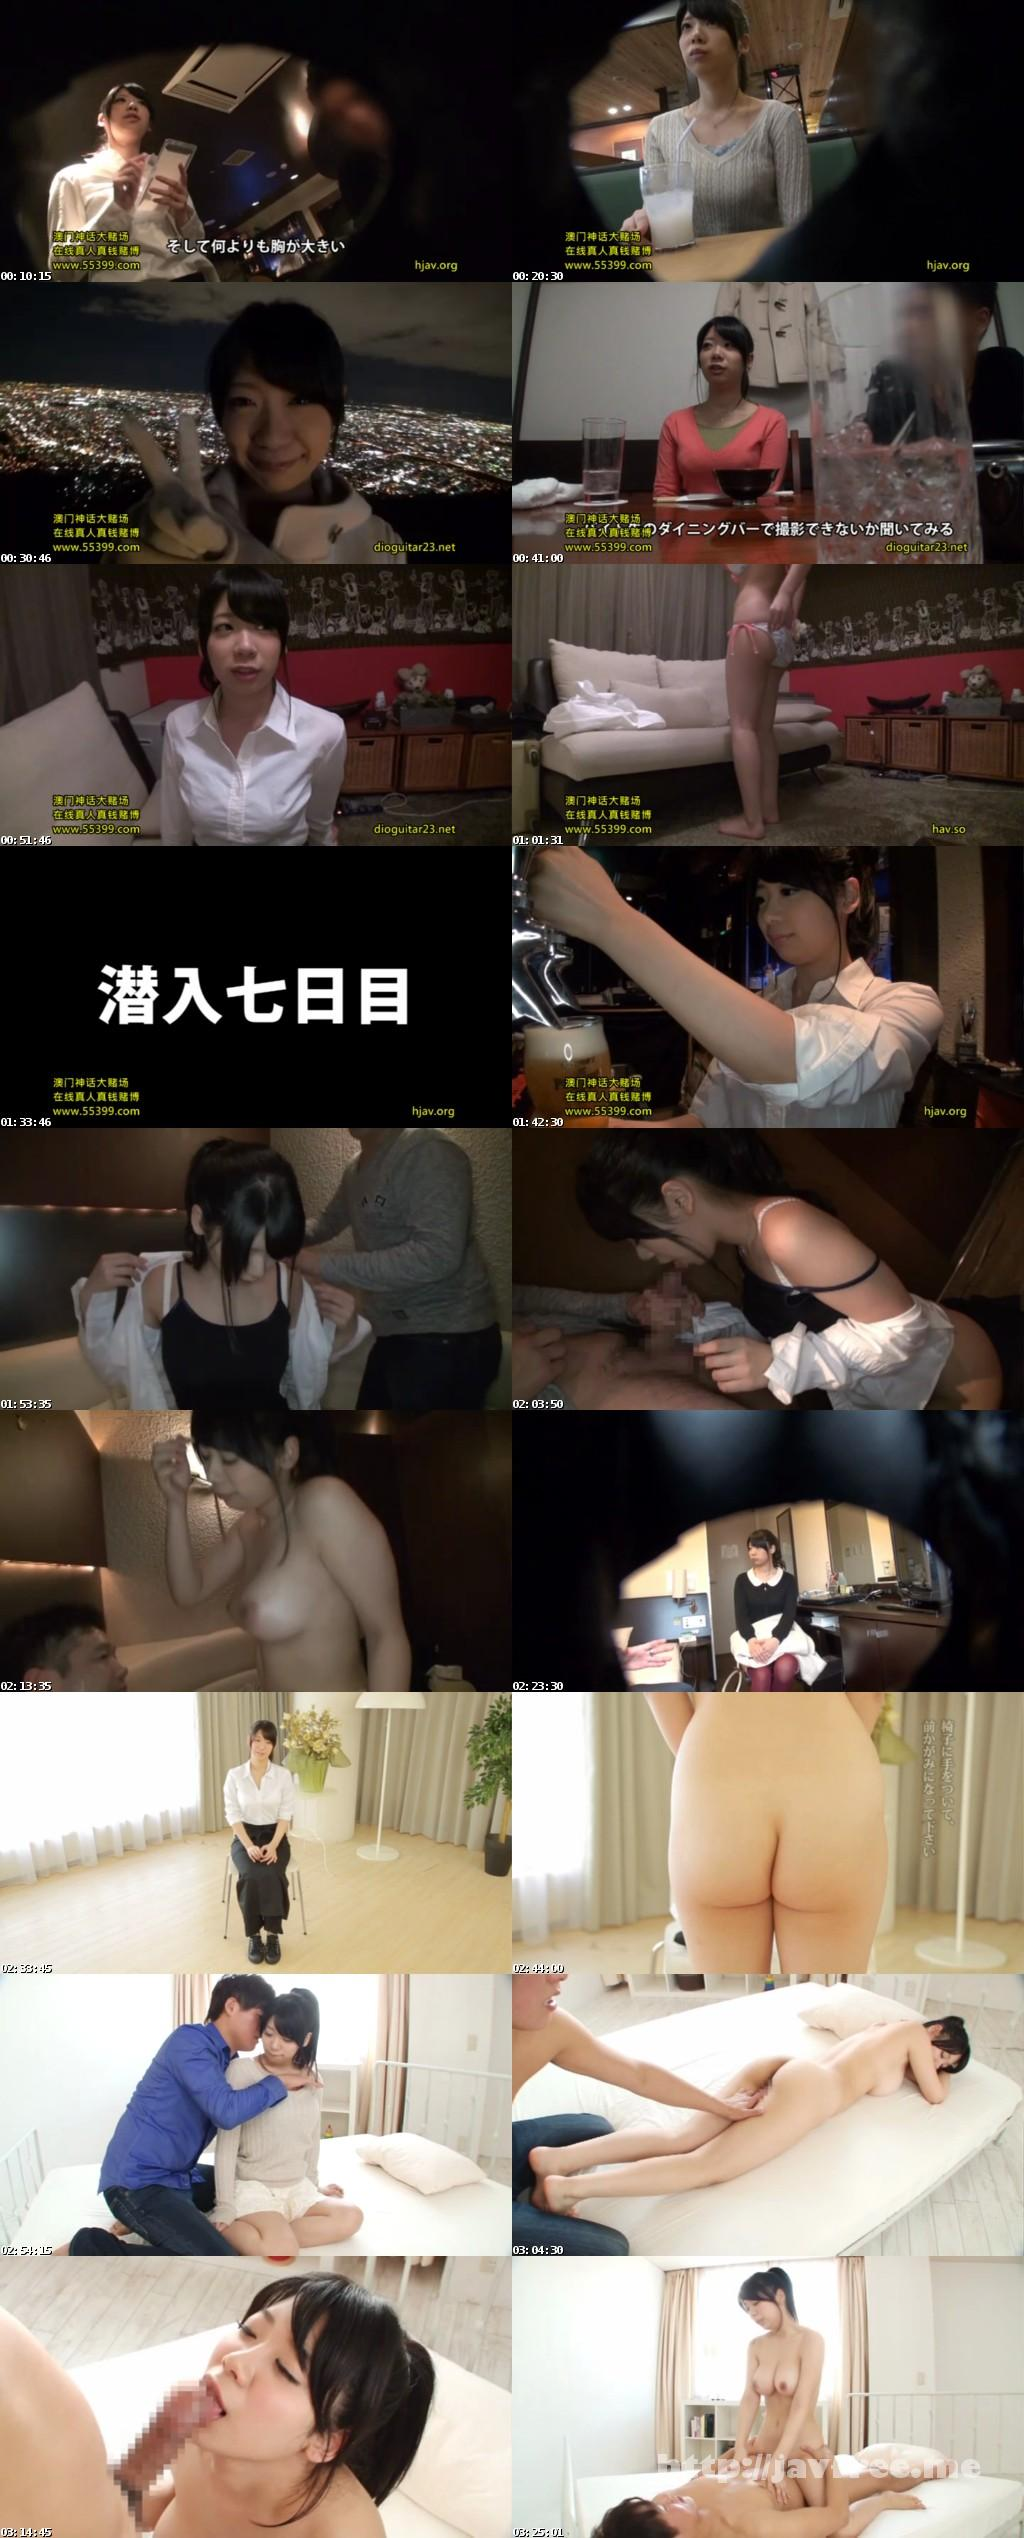 [STAR-510] 高尾明日香 AVDebut - image STAR-510 on https://javfree.me